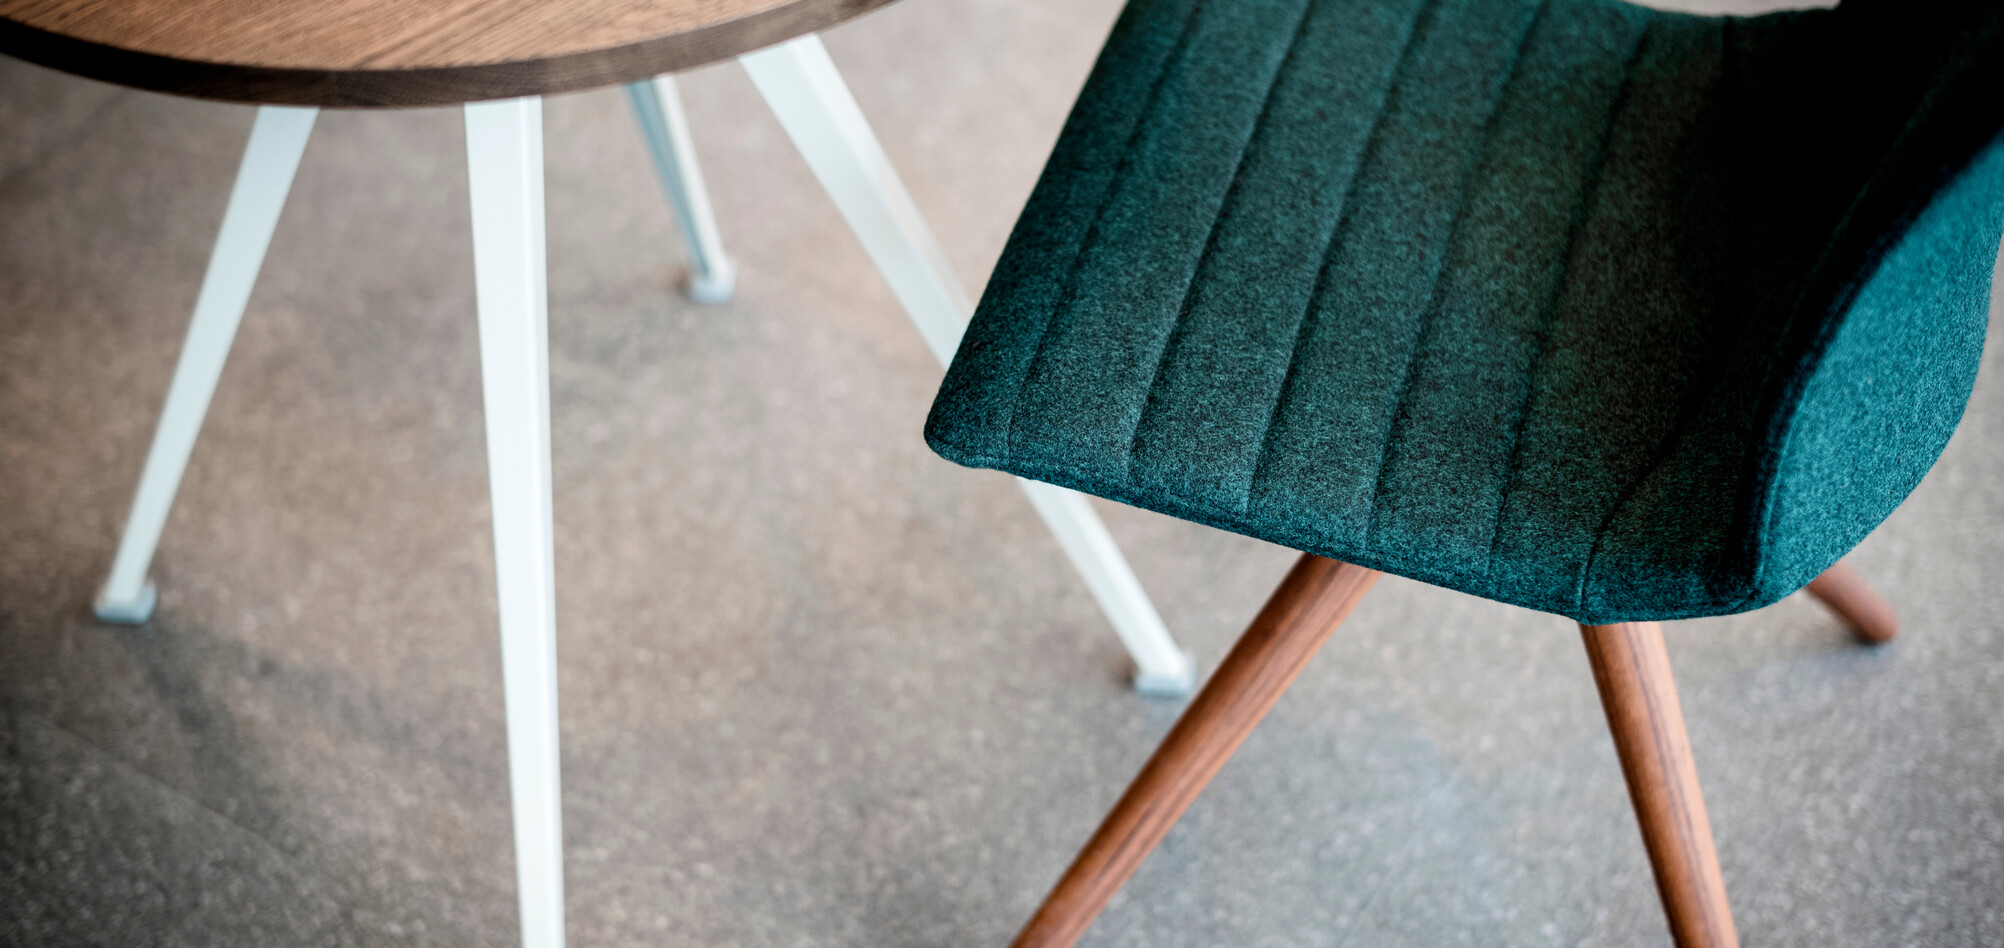 Royal Ahrend Well trestle wood base chair with grey shell and green front upholstered at Caffe Dallucci in Amsterdam L1000965